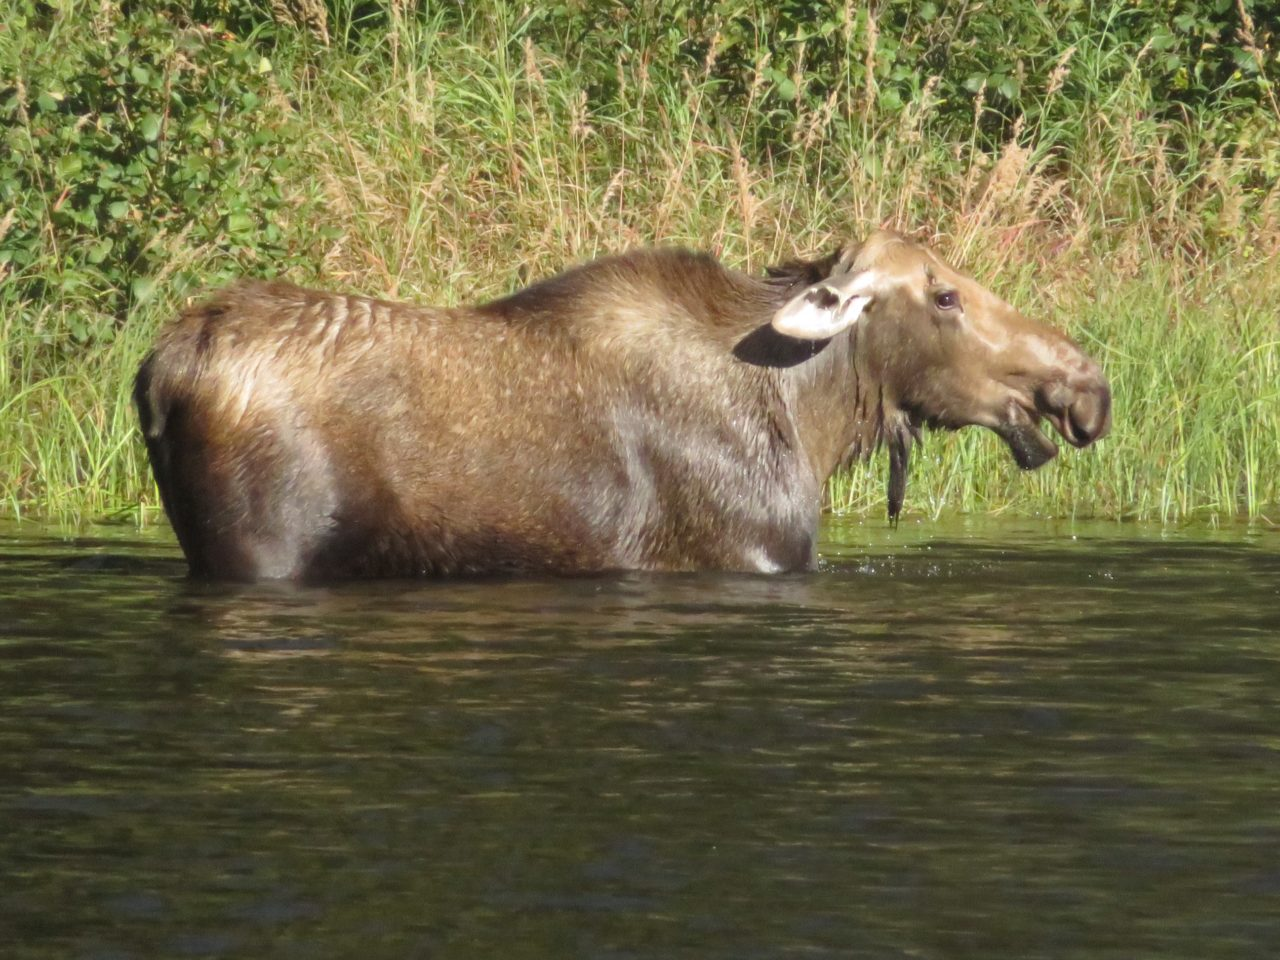 Moose watching during our Alaska Cruise with Princess Cruises